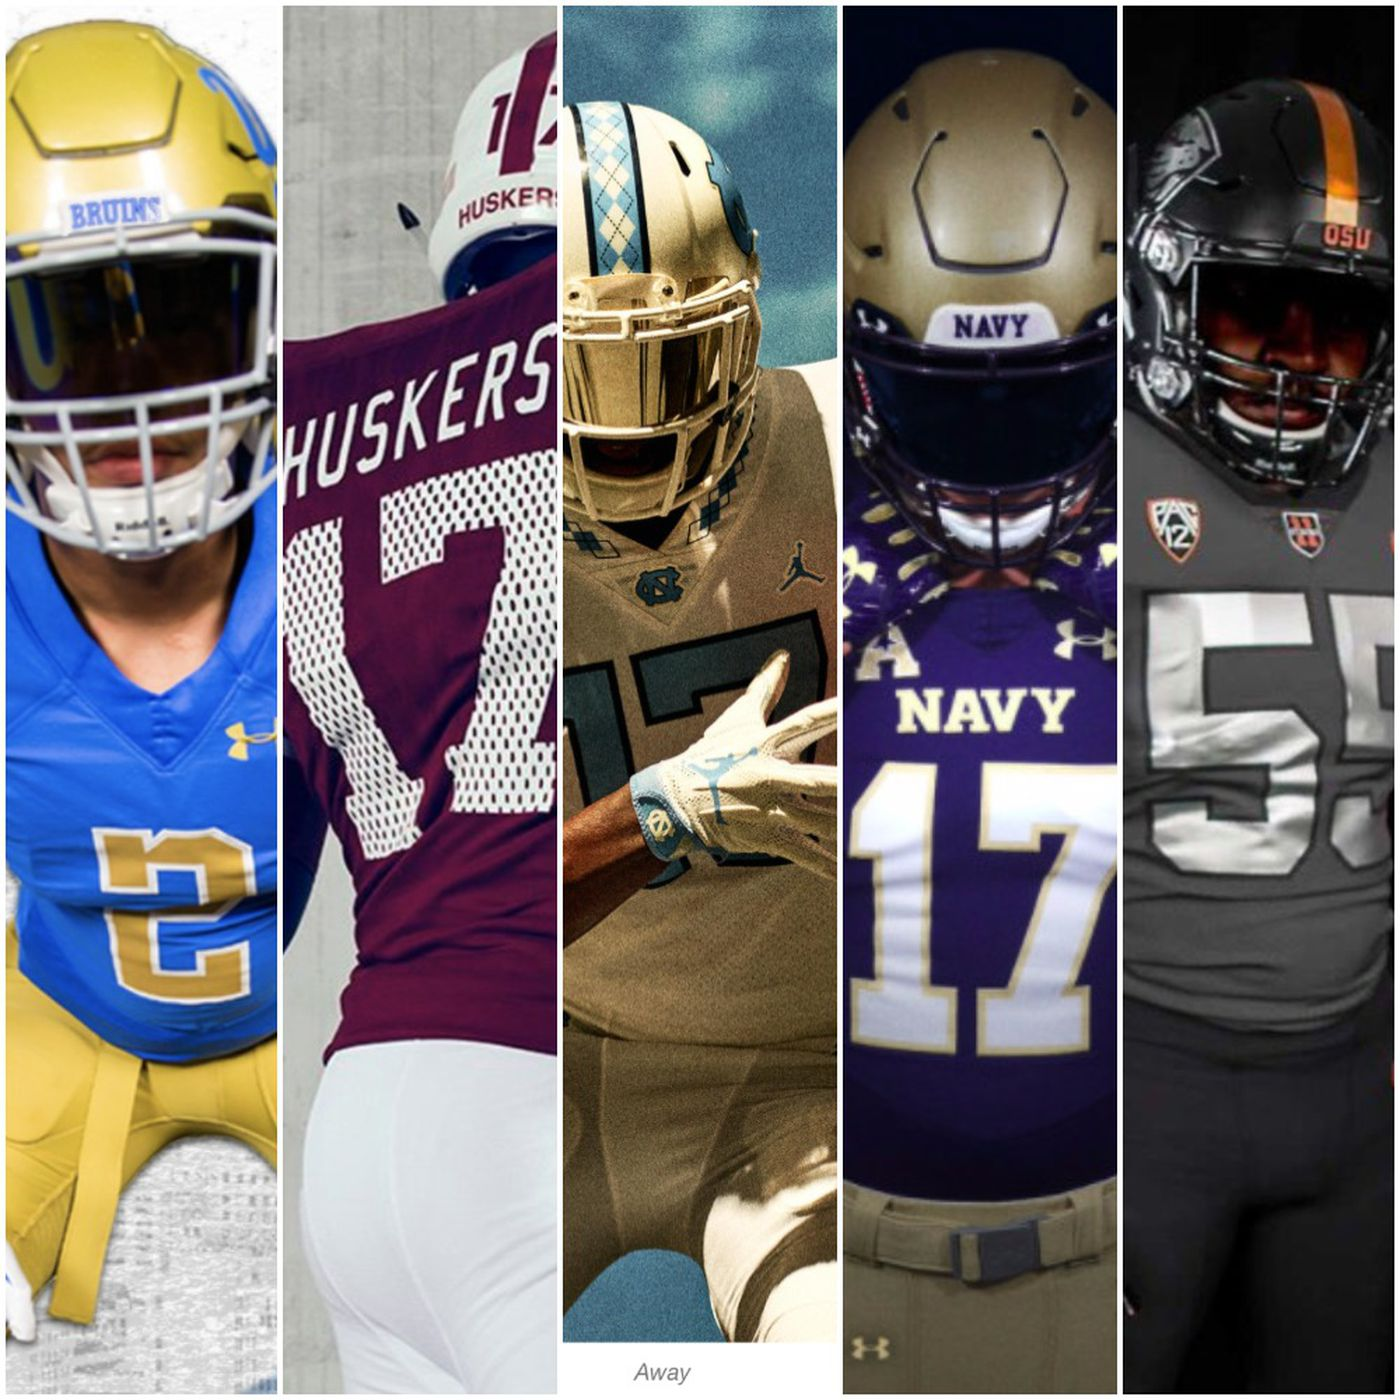 624b06a3525 26 new college football uniforms  Simple is the 2017 trend - SBNation.com